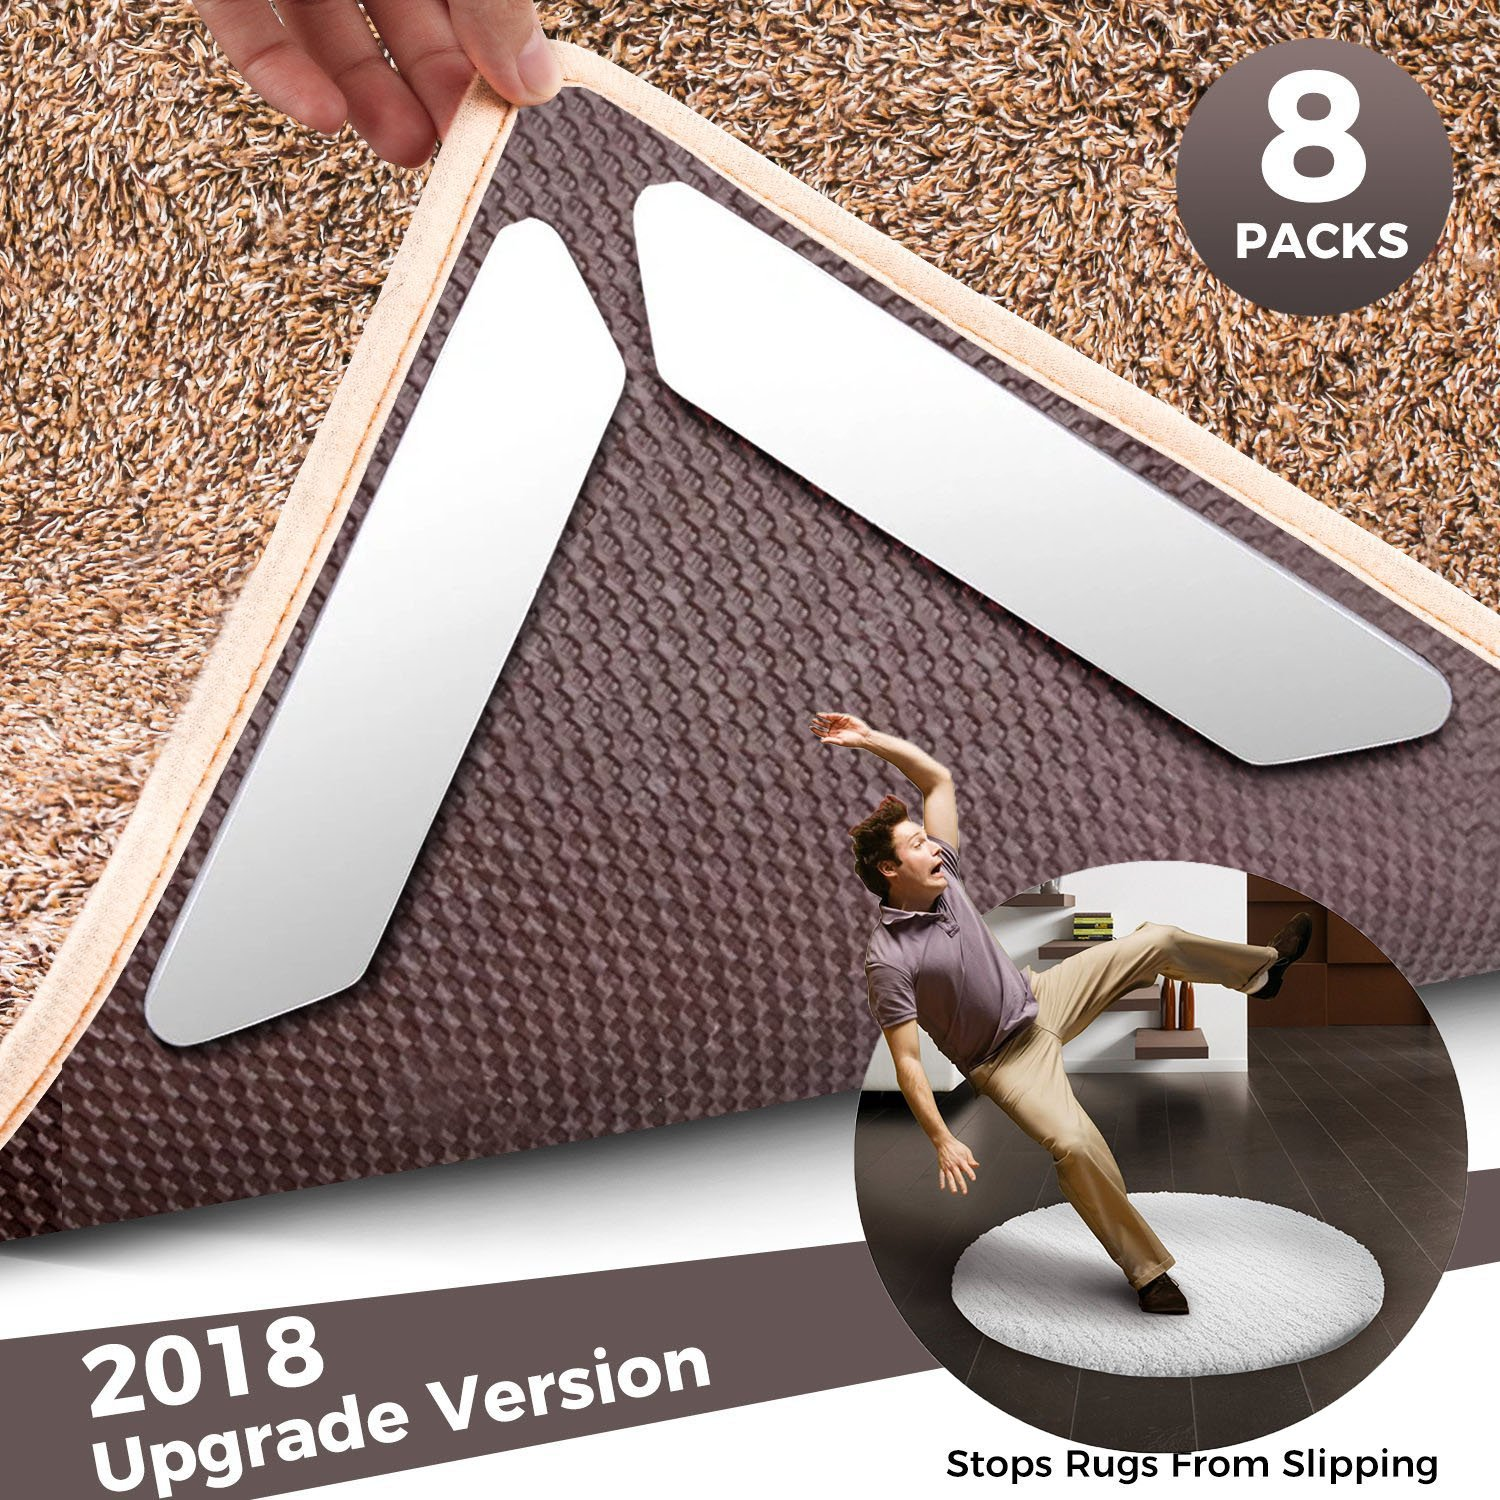 Rubikliss Rug Grippers,Non-Slip Anti-Curling Rug Gripper with Renewable Carpet Tape,Flatten Carpet Corners, Stop Slipping Ideal Rug Stopper For Kitchen | Bathroom|Wood and Carpet Floors by (8 packs)